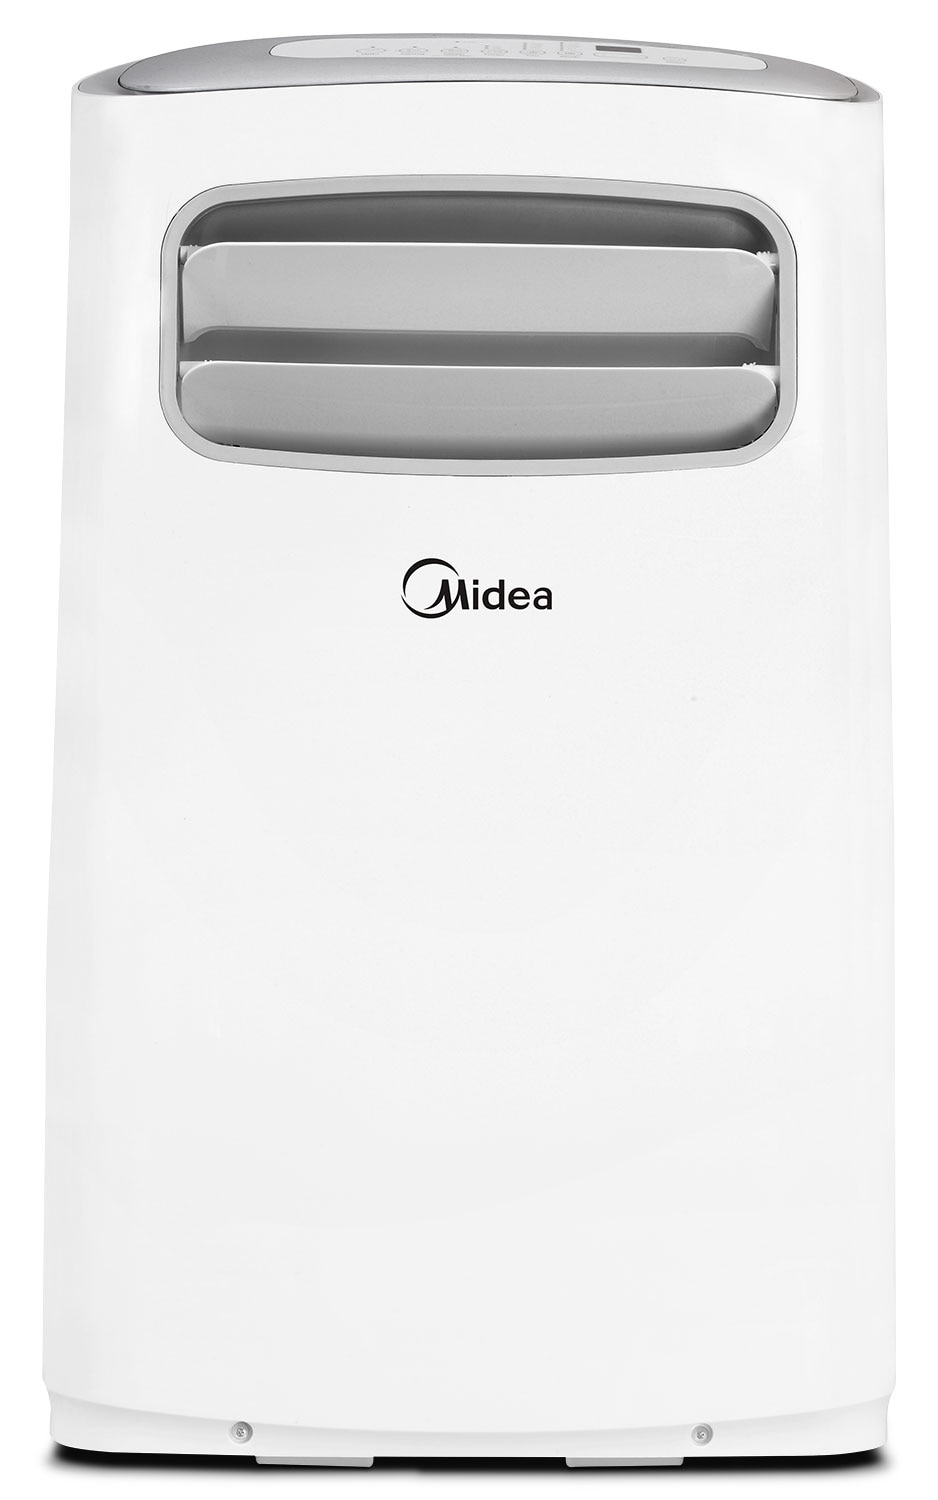 Midea 14,000 BTU 2-in-1 Portable Air Conditioner and Heater